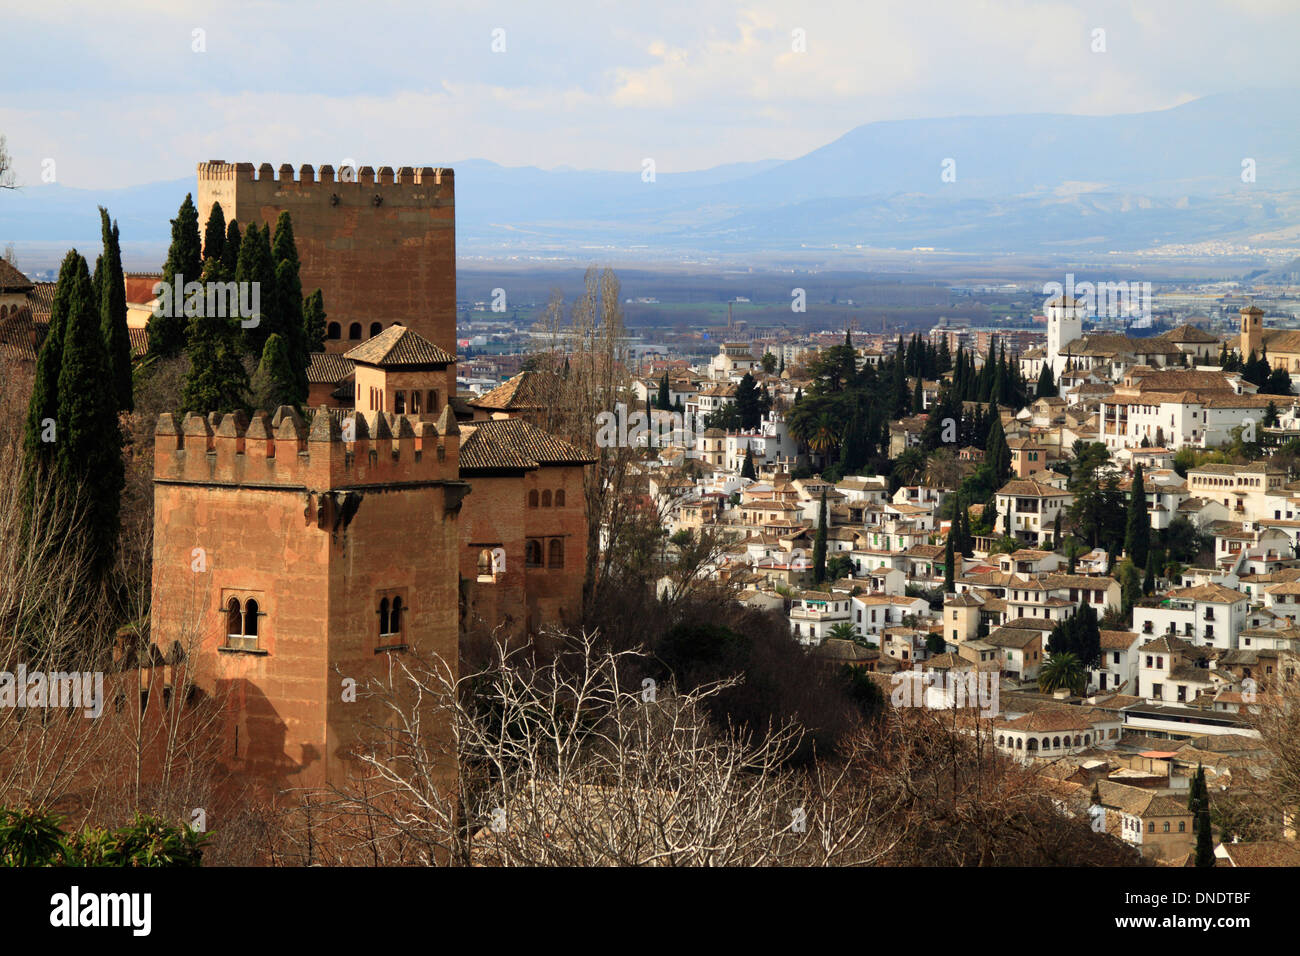 Alhambra towers and Albaicin view, Granada, Spain Stock